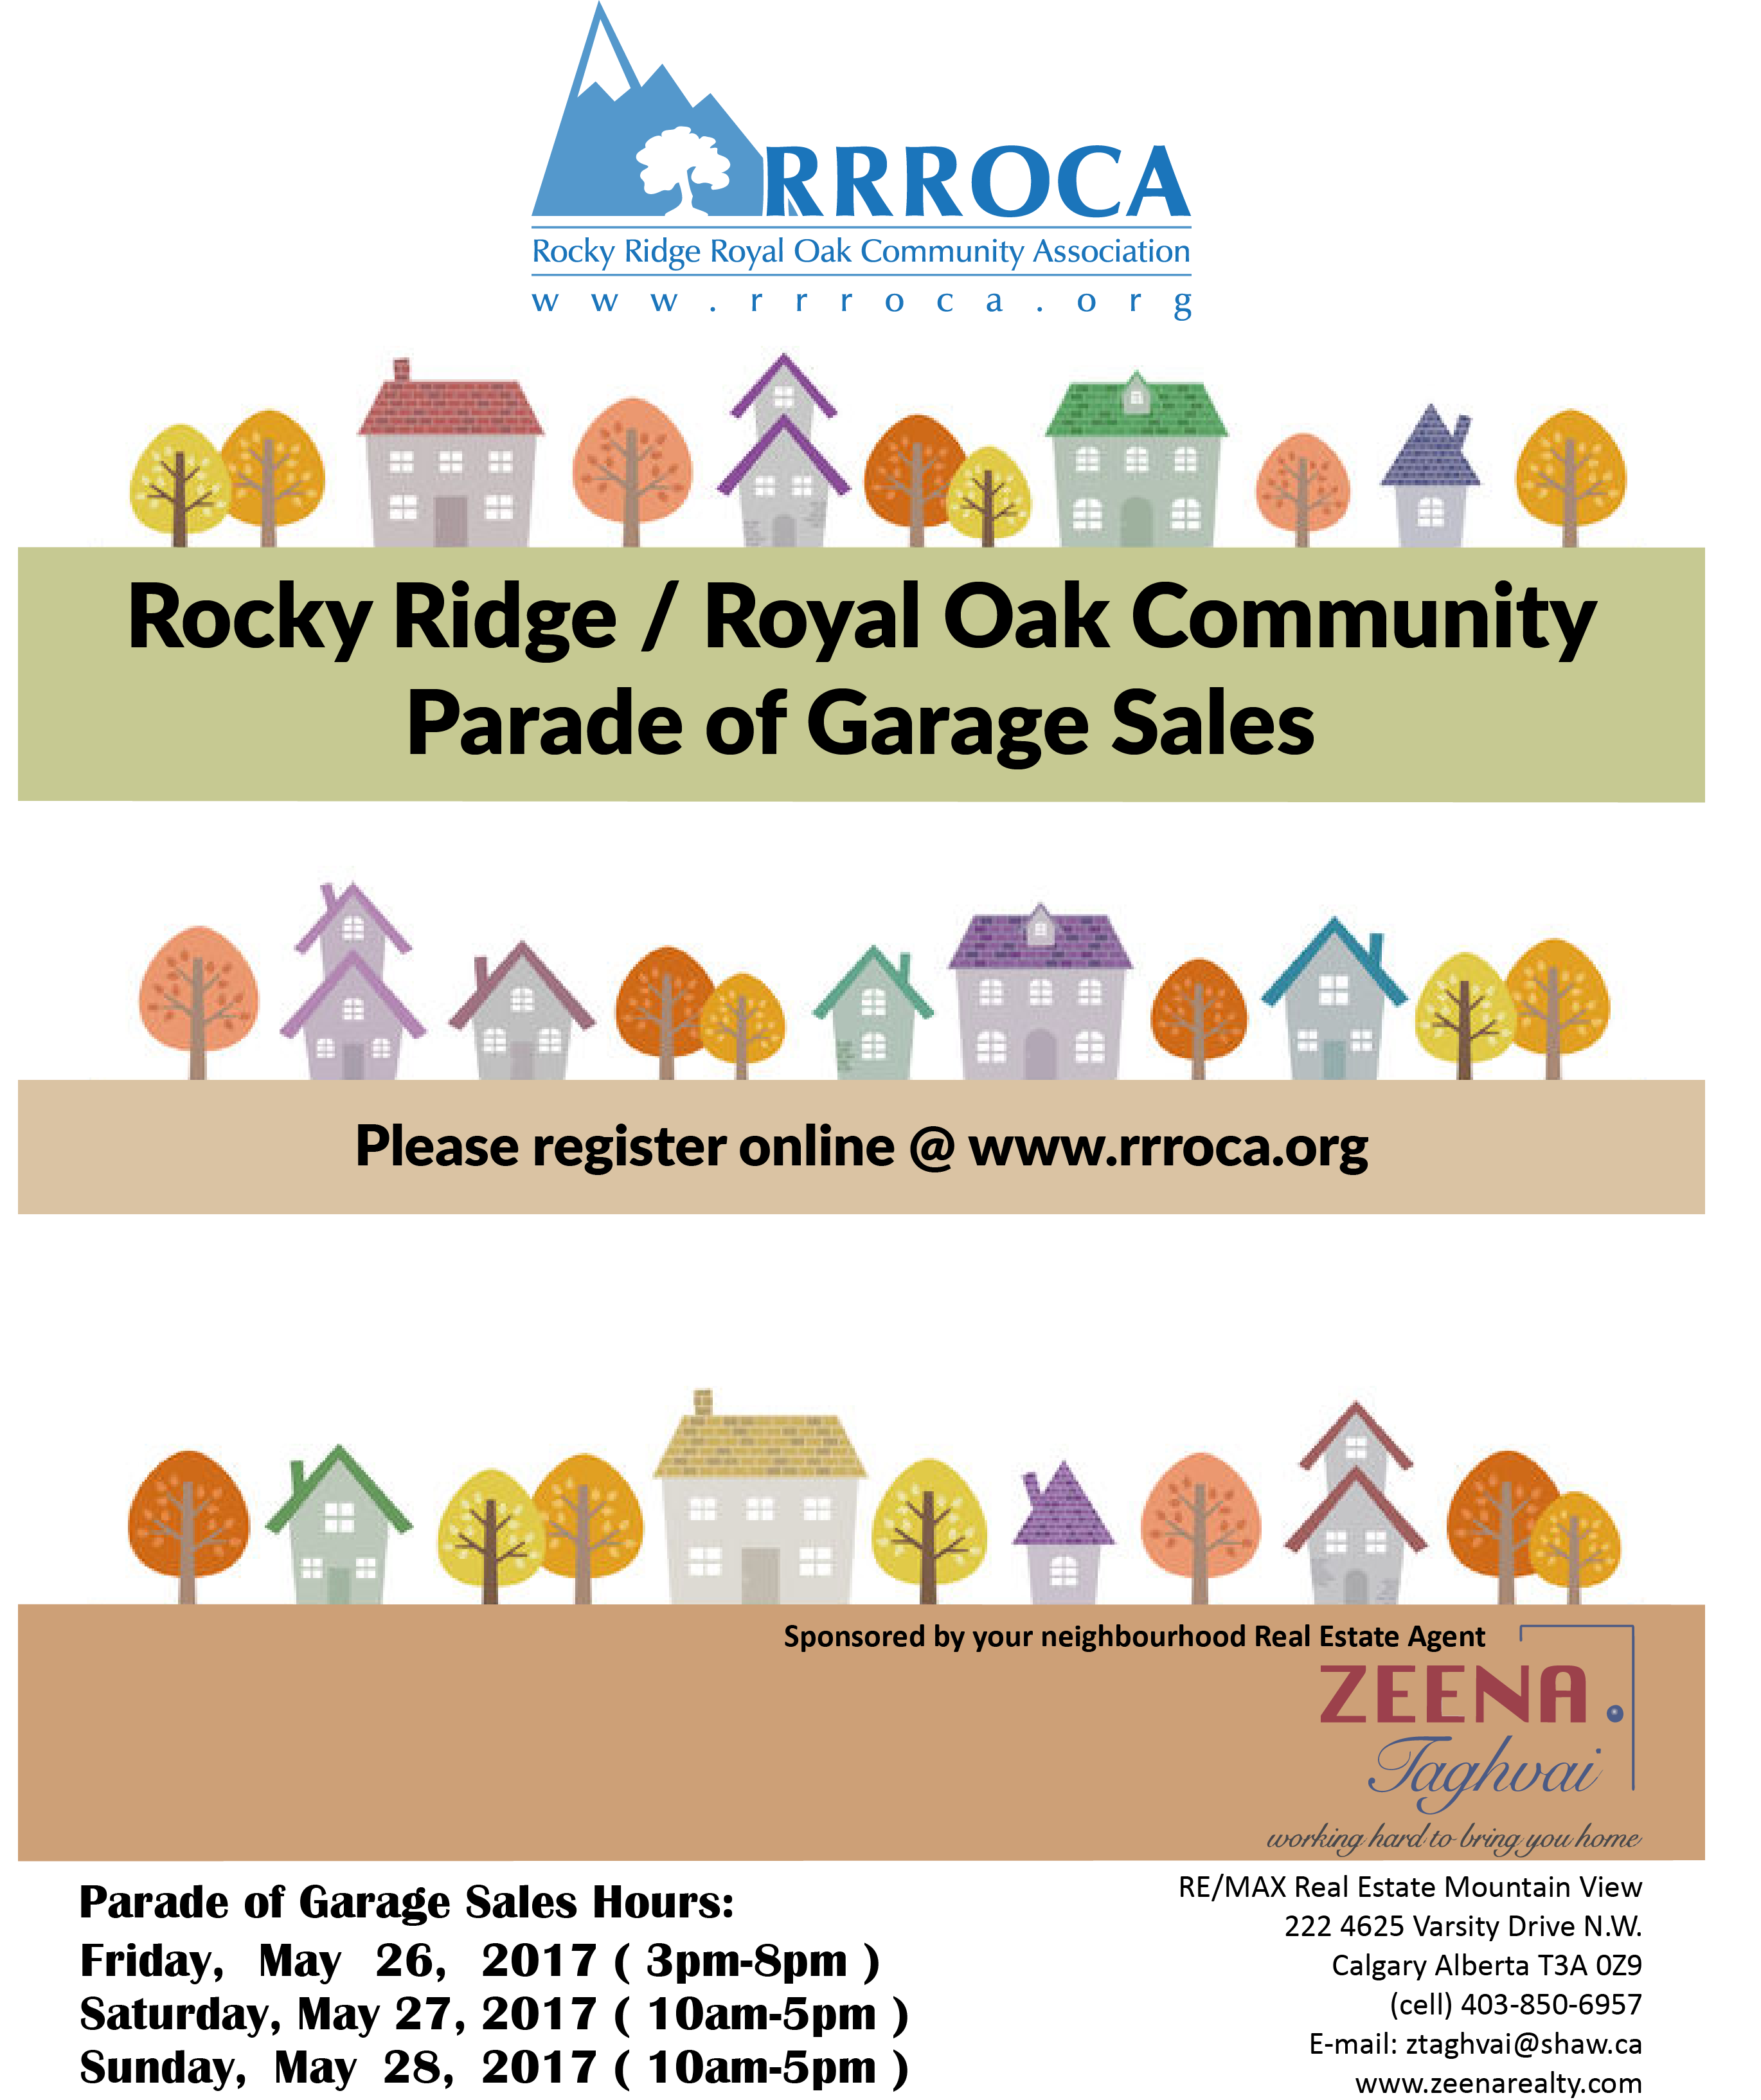 home rocky ridge royal oak community association calgary please click here to sign up